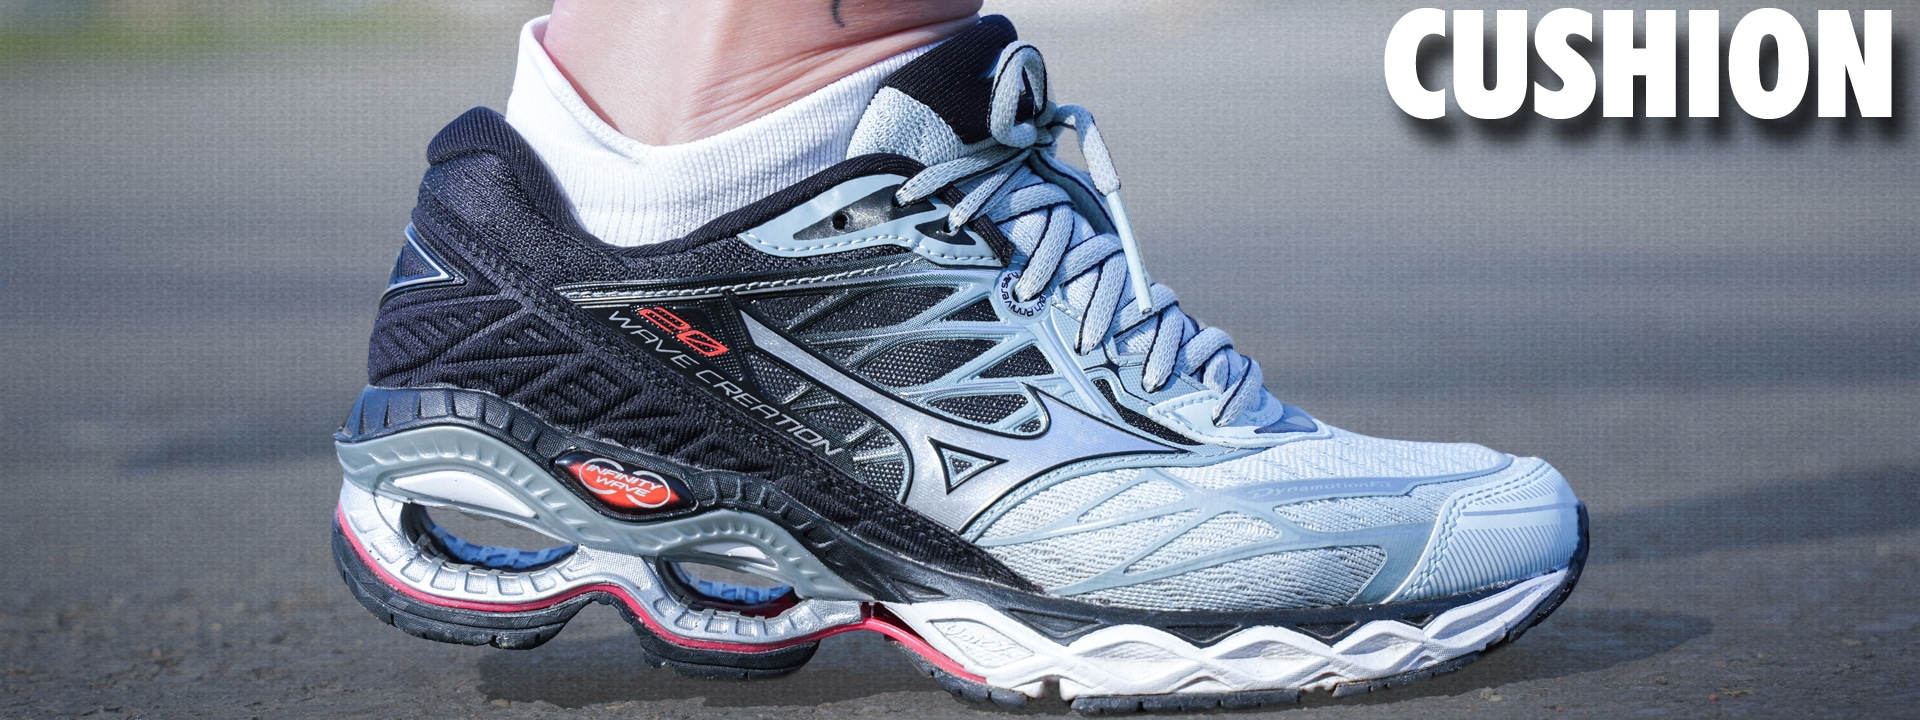 Mizuno Wave Creation 20 Cushion